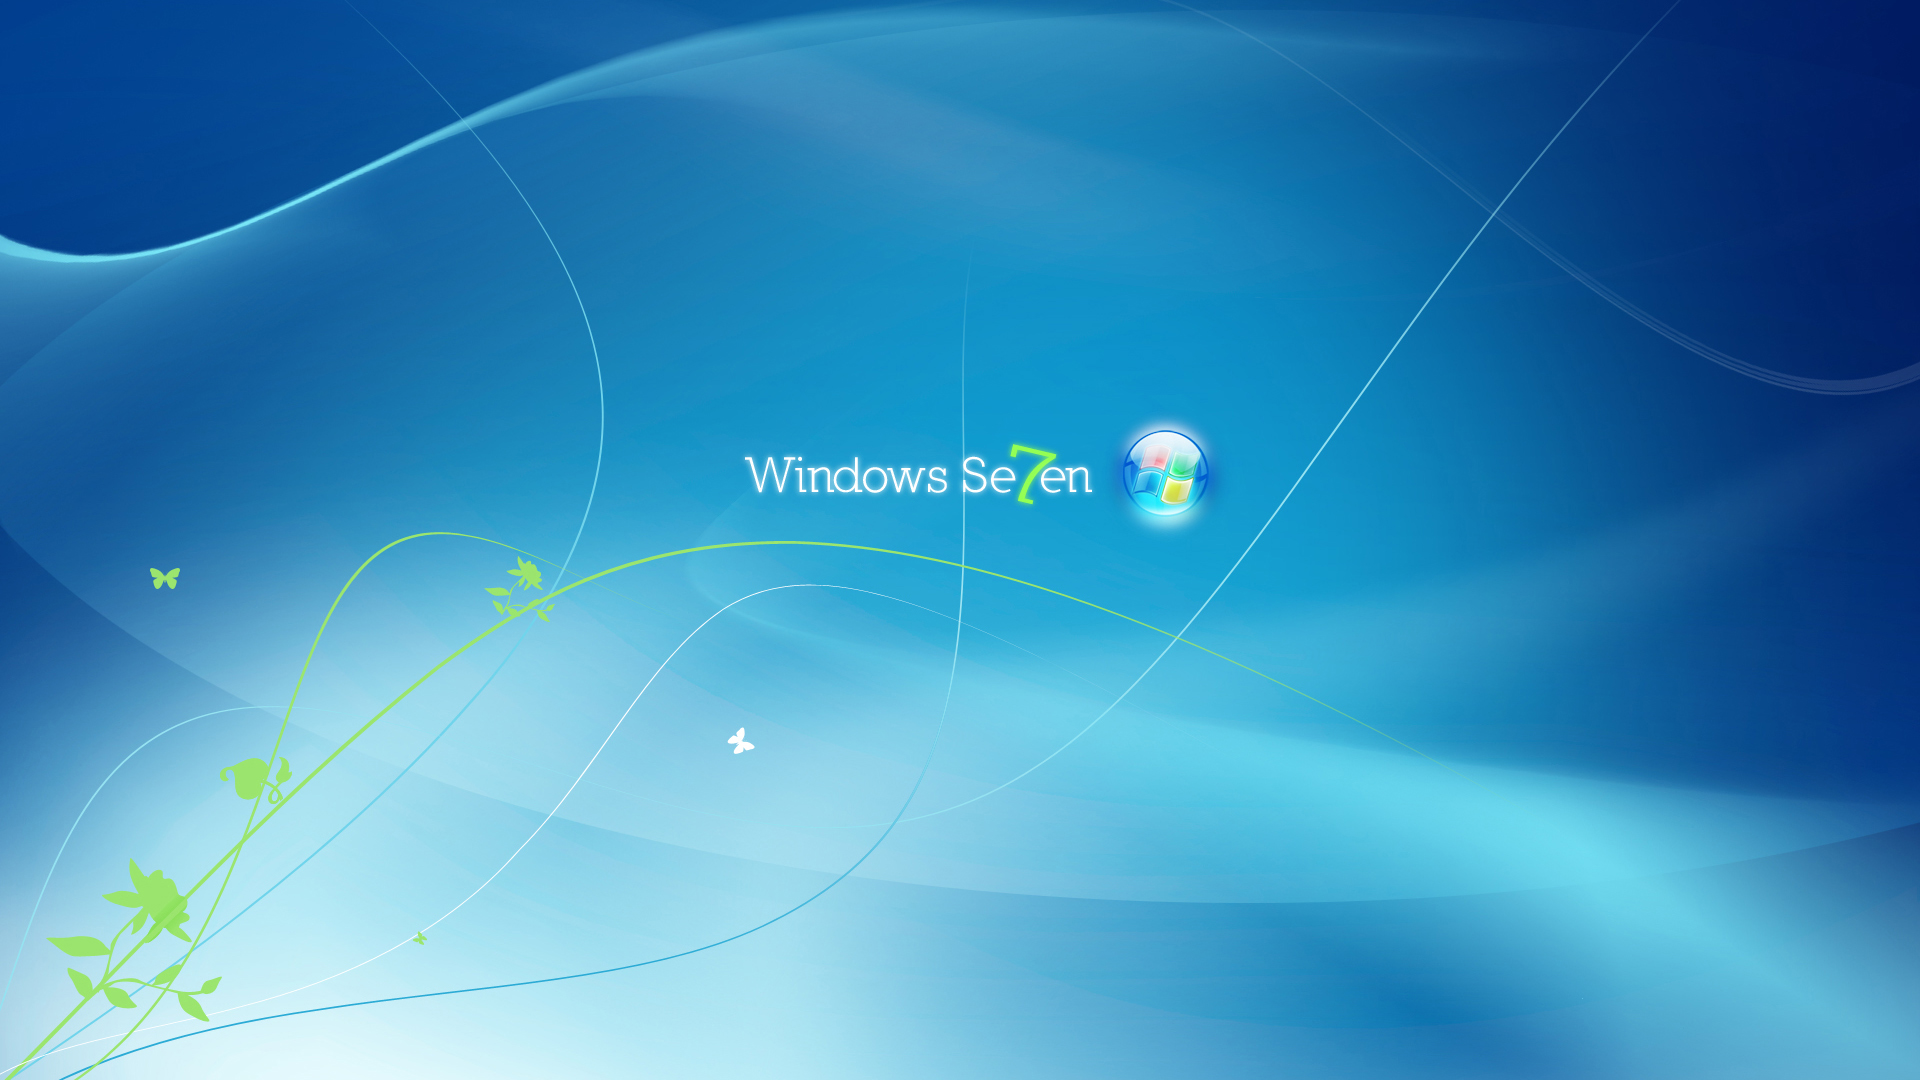 windows seven hd 1080p HDjpg 1920x1080